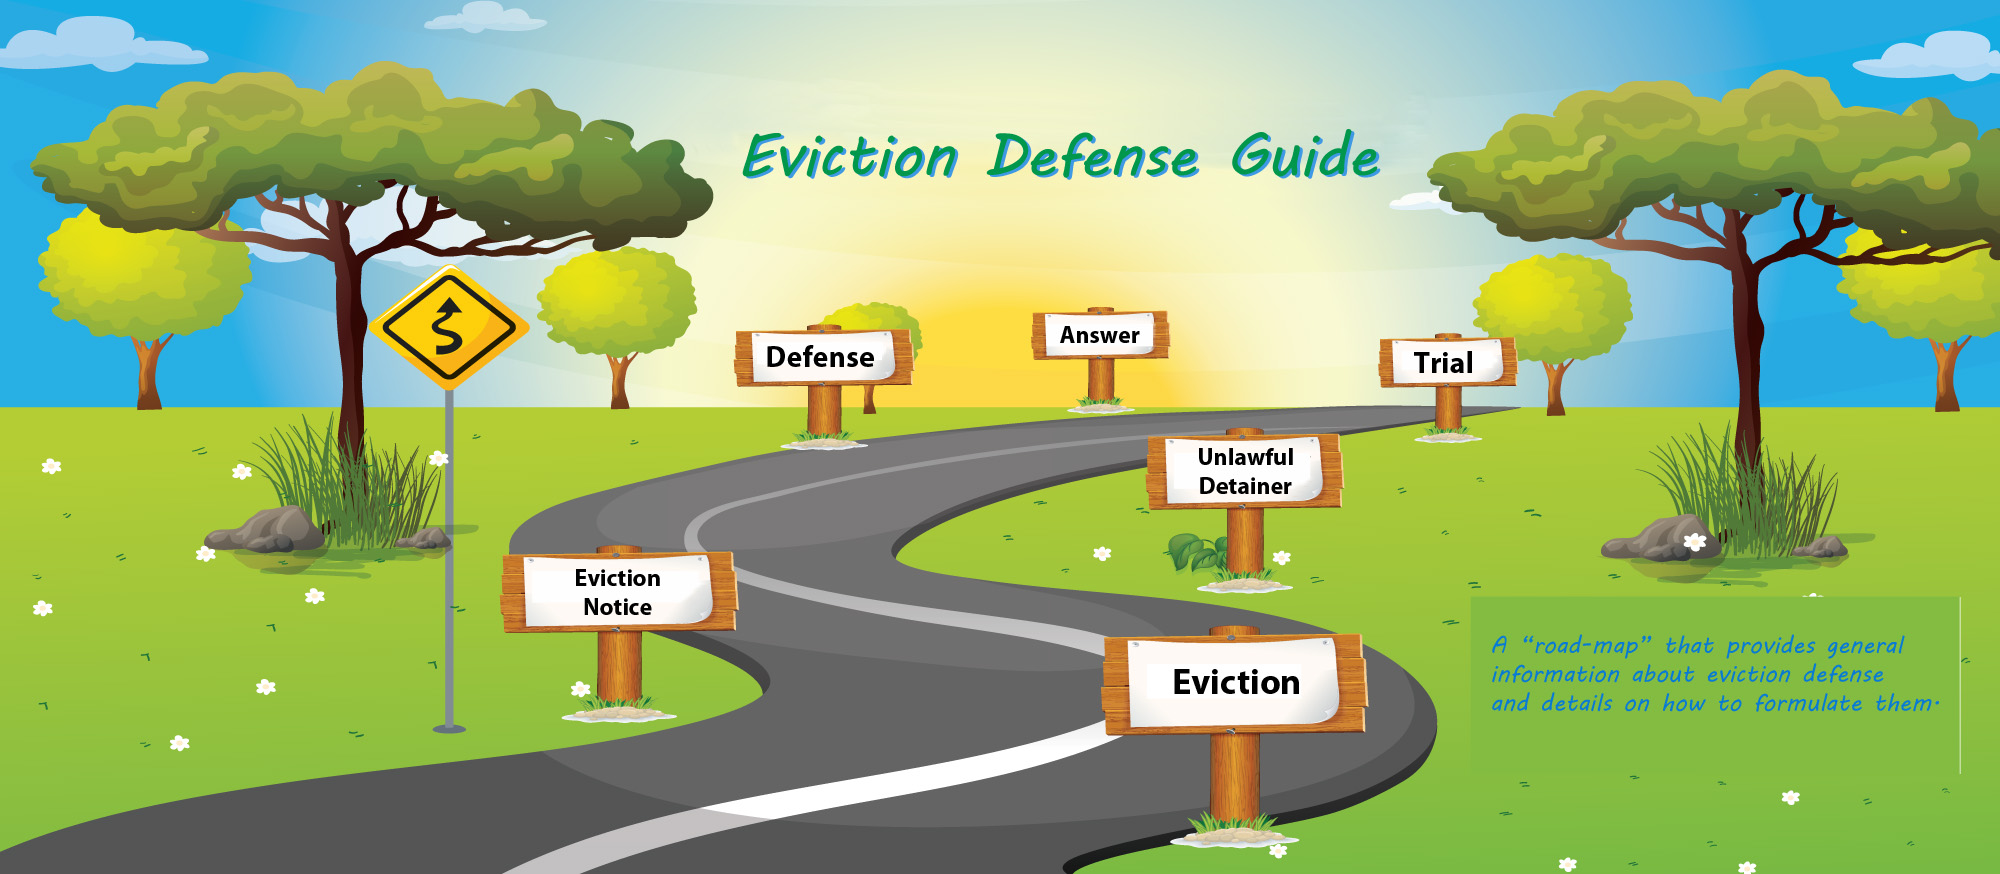 Eviction Defense Map